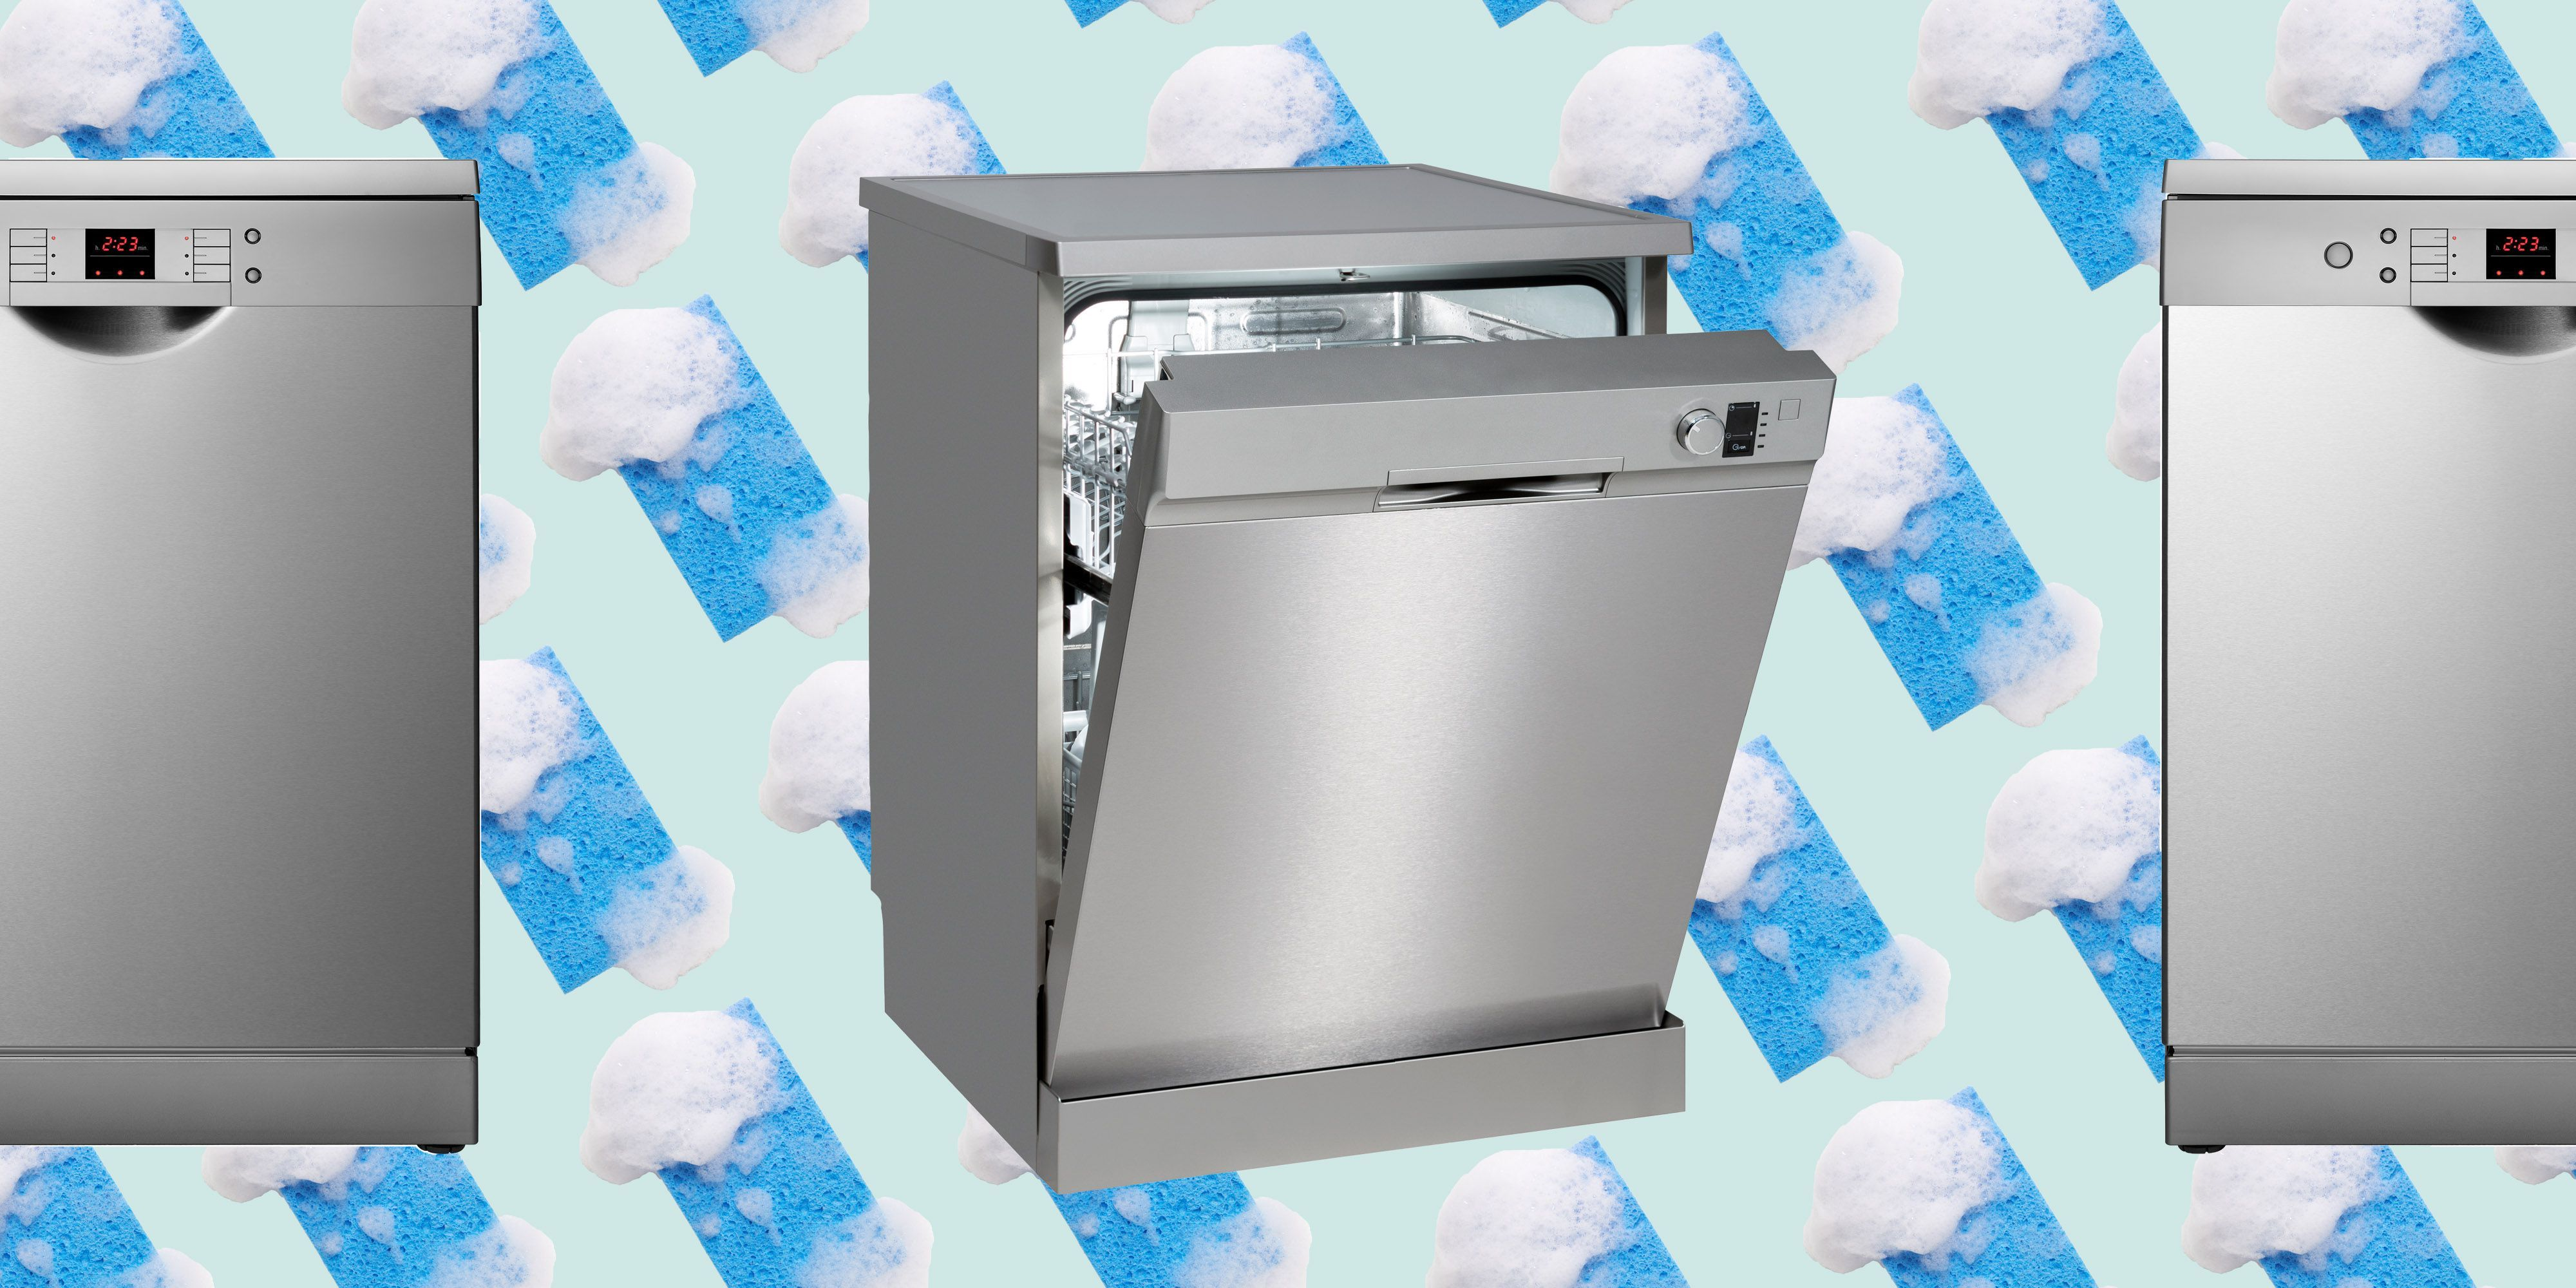 5 Easy Steps to Clean Your Dishwasher - Best Way to Clean Inside